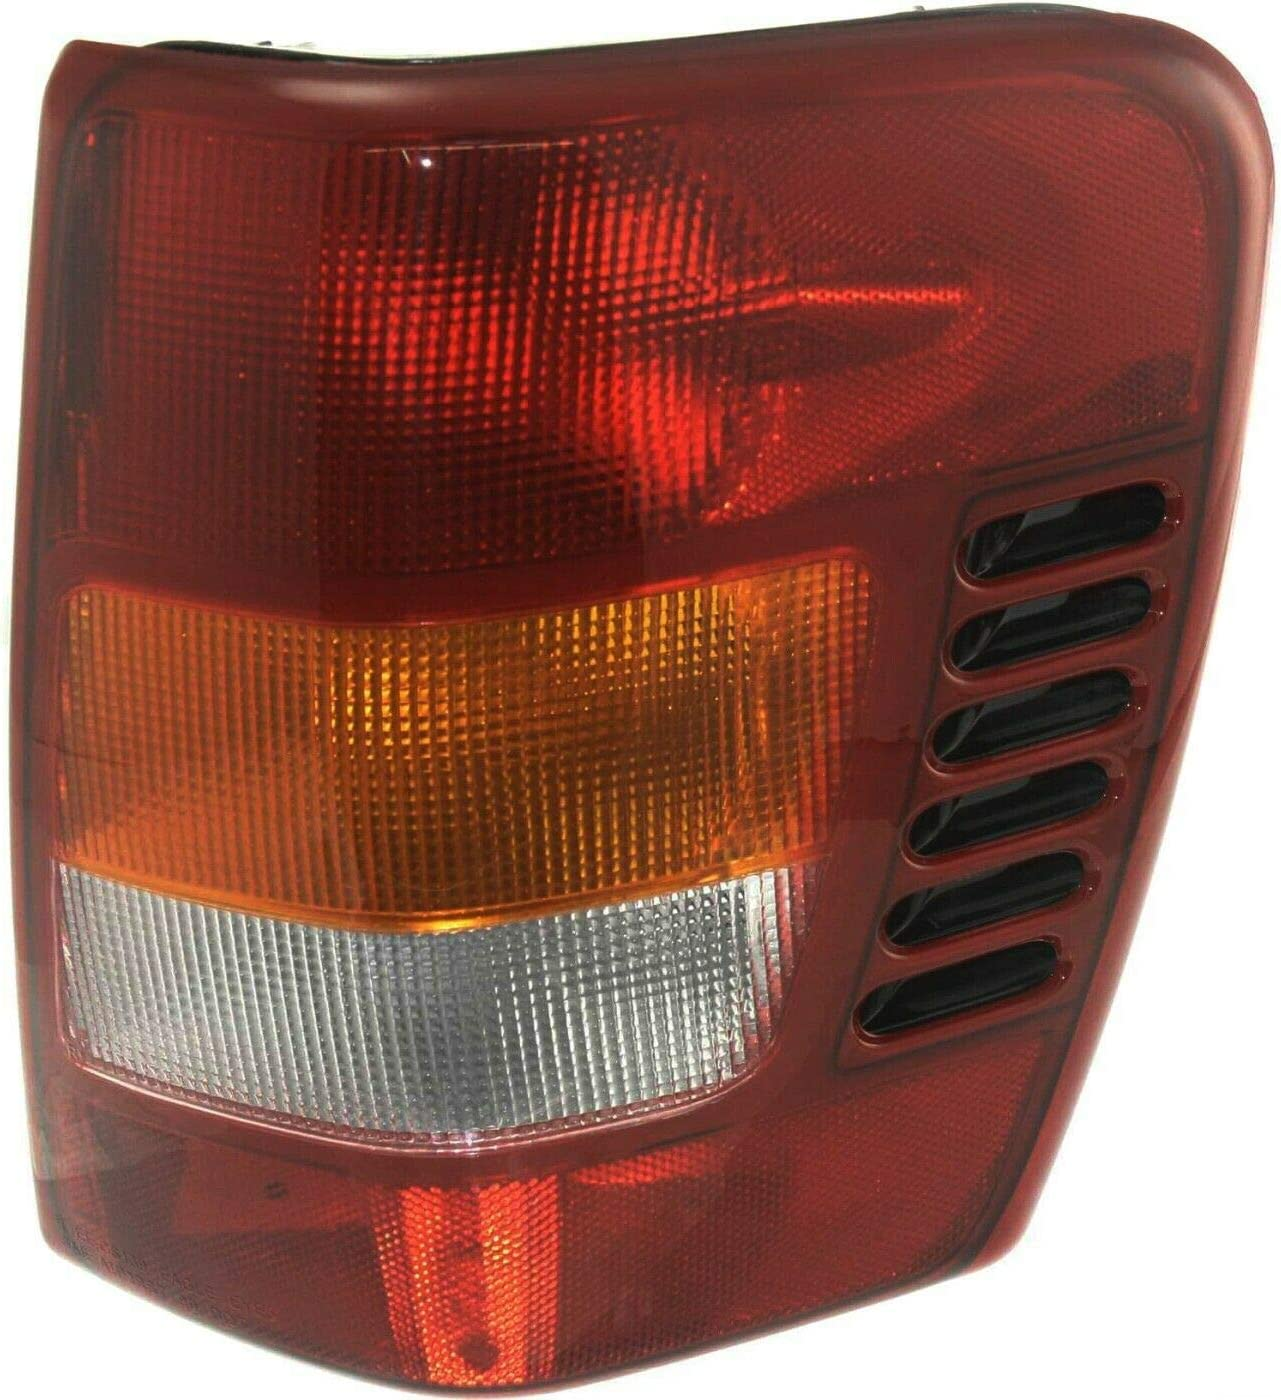 Department store VioletLisa New Replacements Passenger Al sold out. Side Housing Co Tail Light